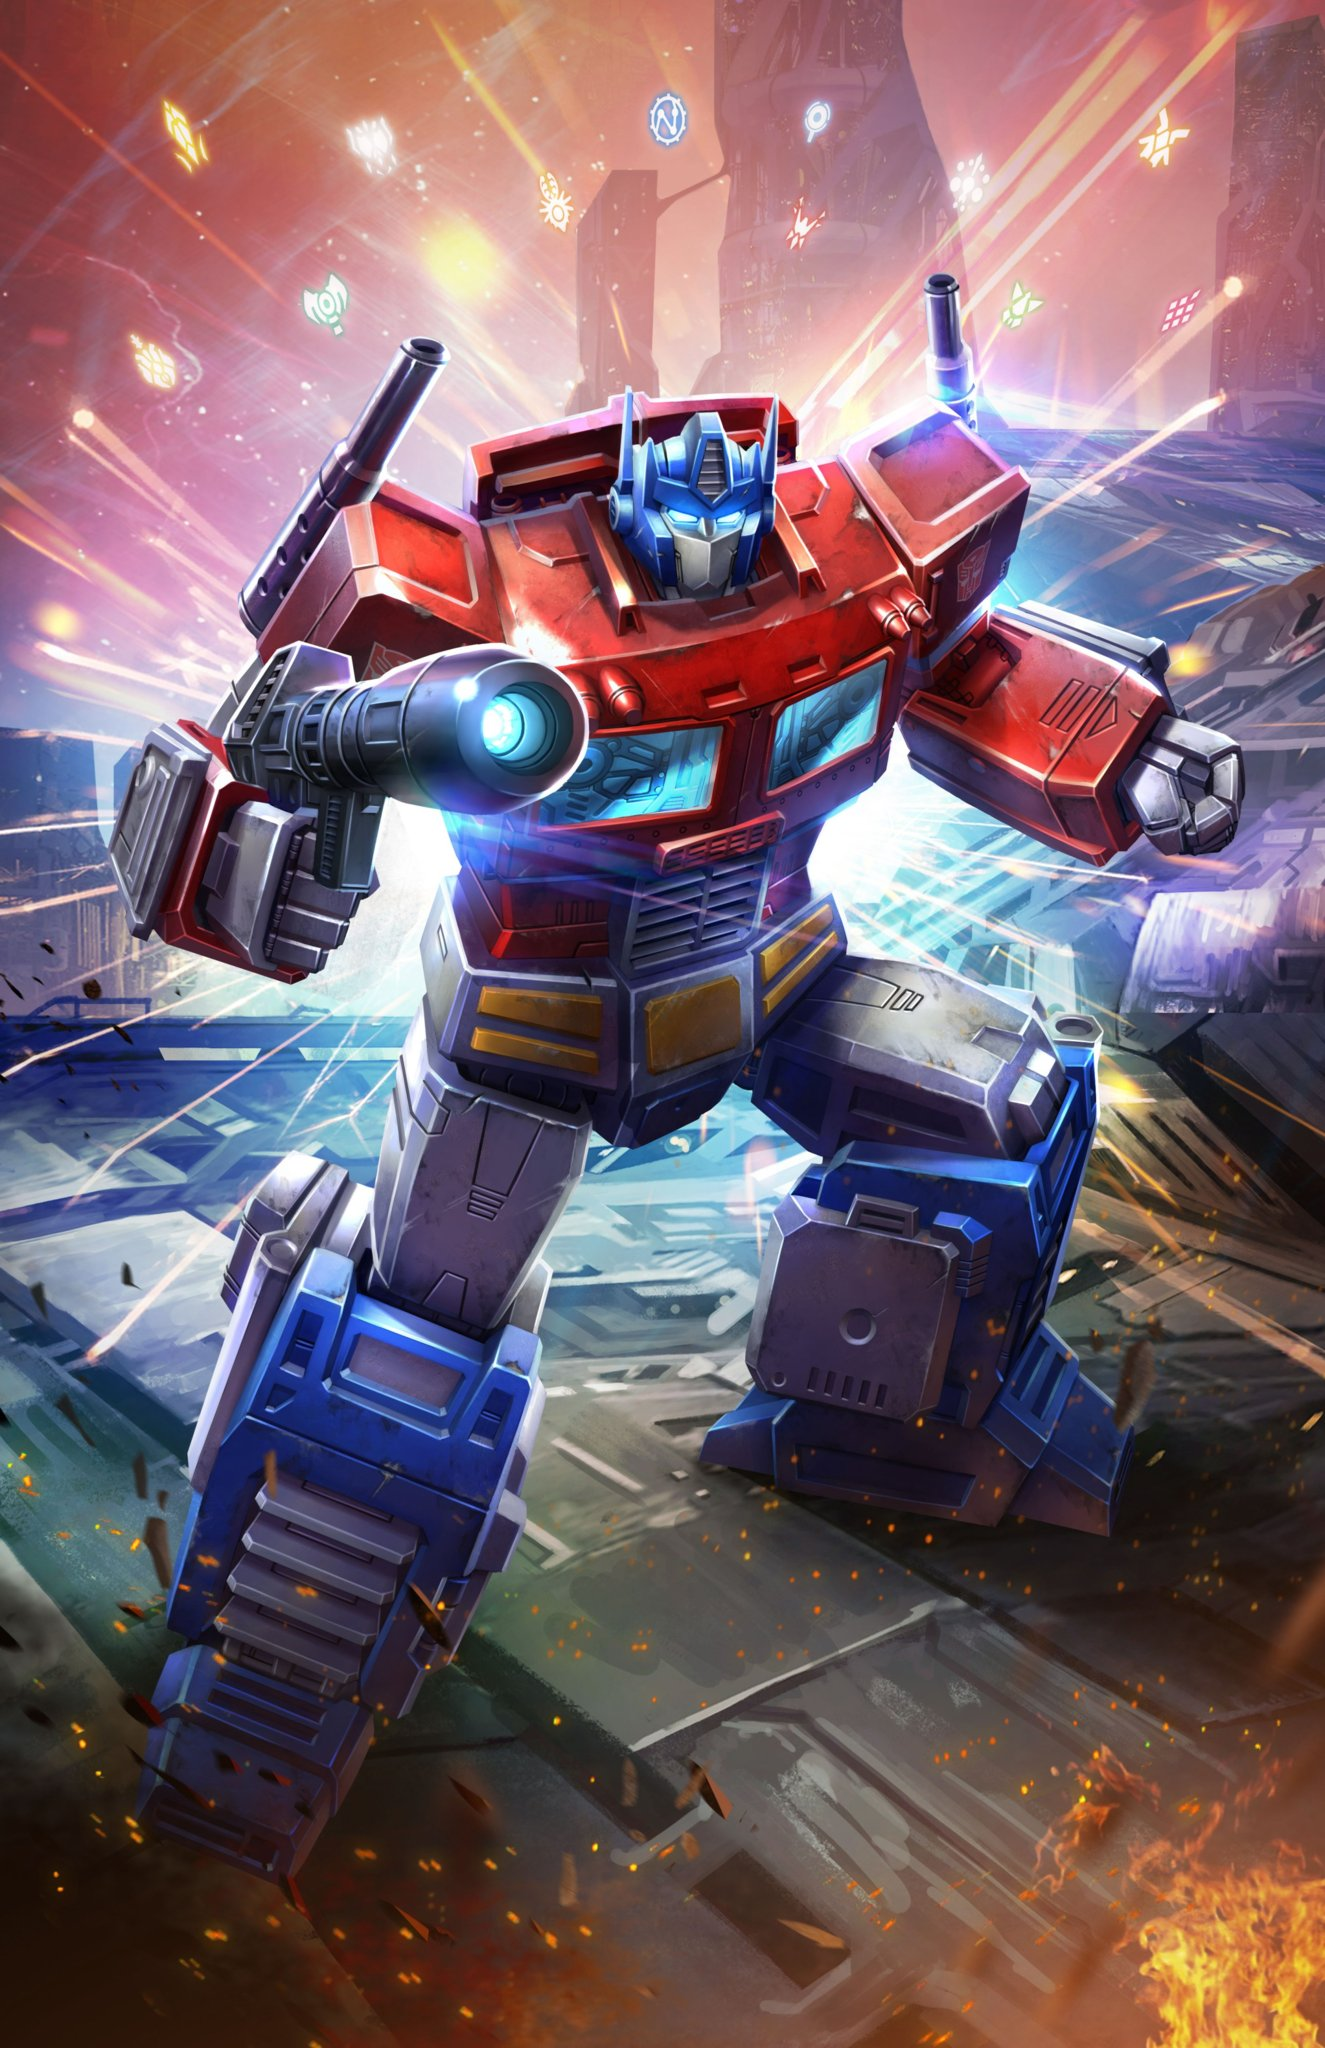 More Transformers: Power Of The Primes Official Images ...